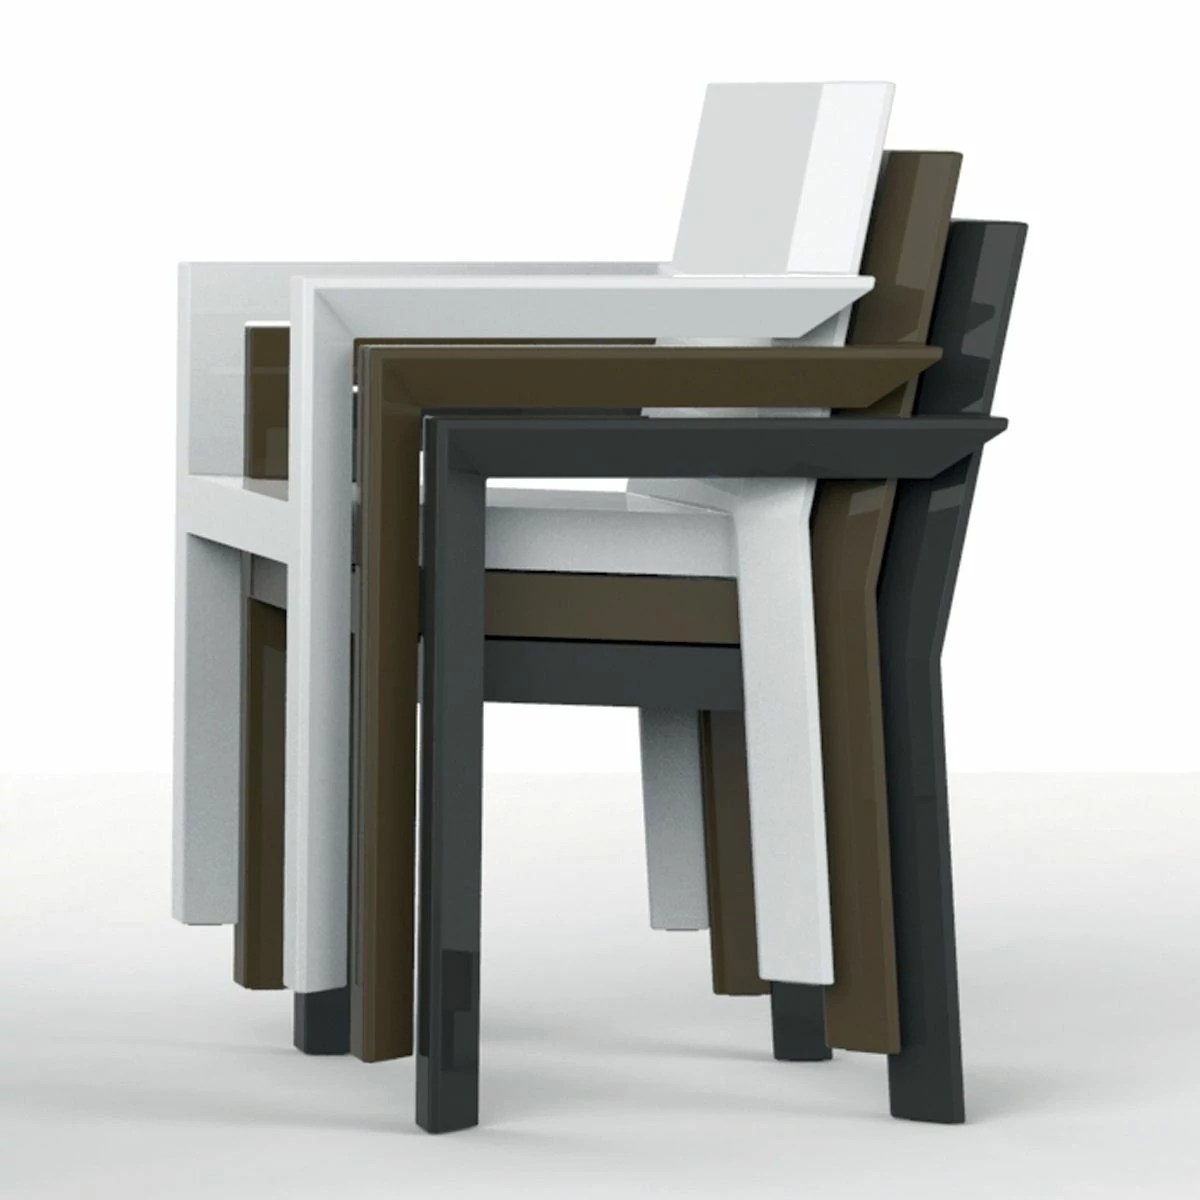 Fauteuils Table Fauteuil De Table Design Frame Vondom Zendart Design